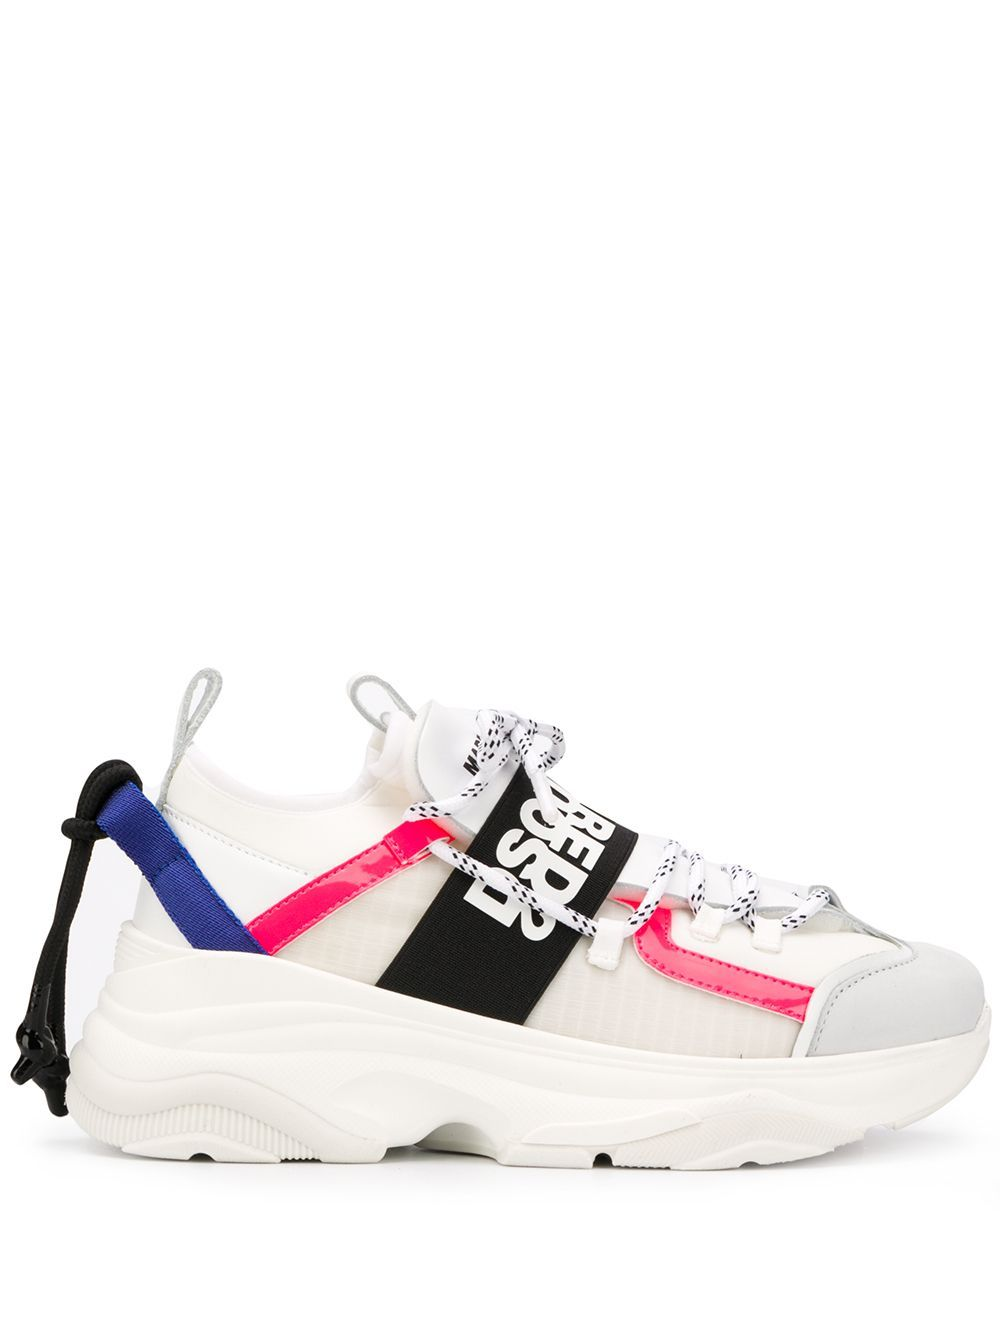 DSQUARED2 women d-bumpy one sneaker